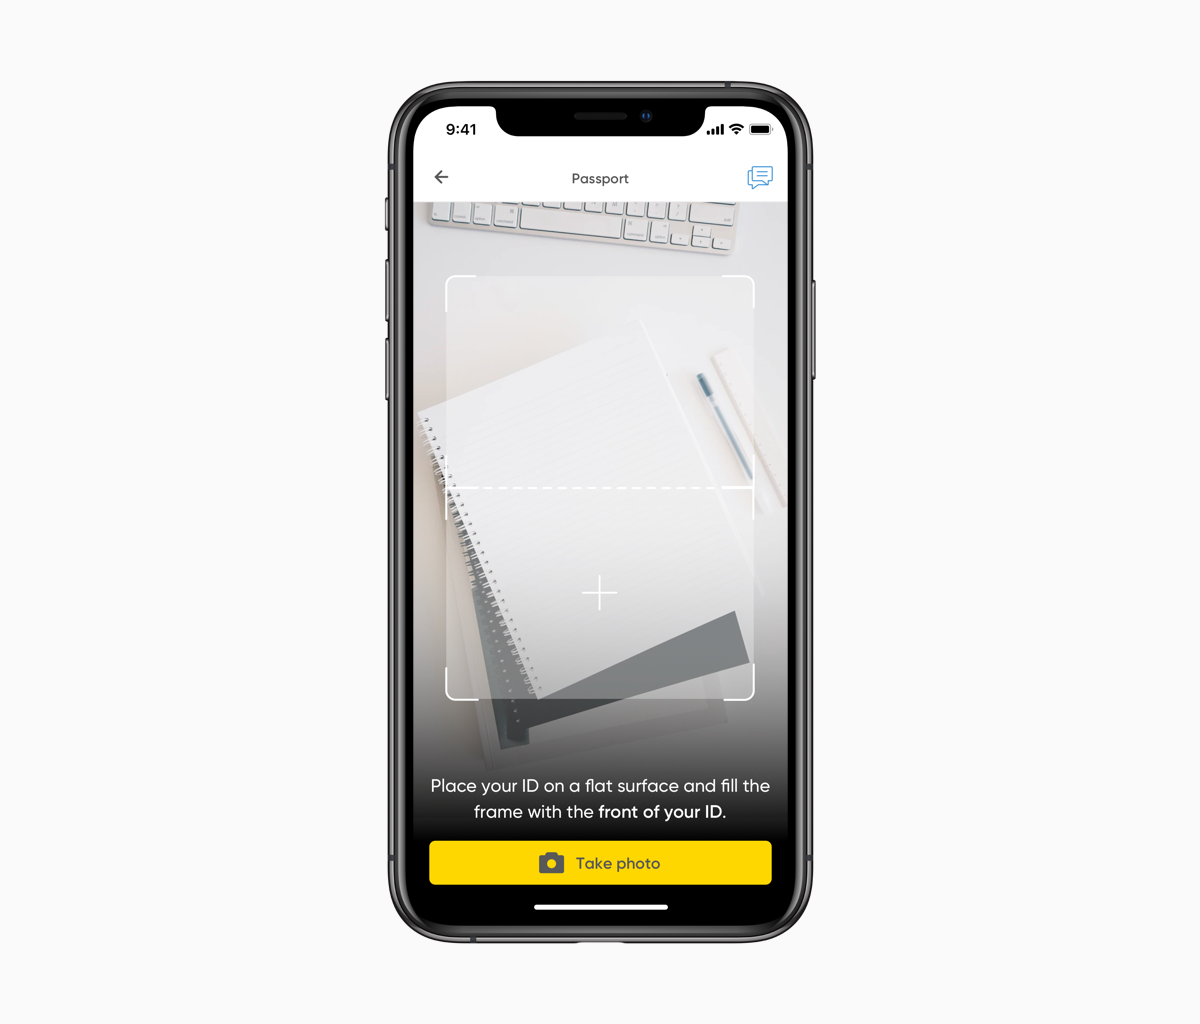 iPhones showing the intial screens of the old onboarding process